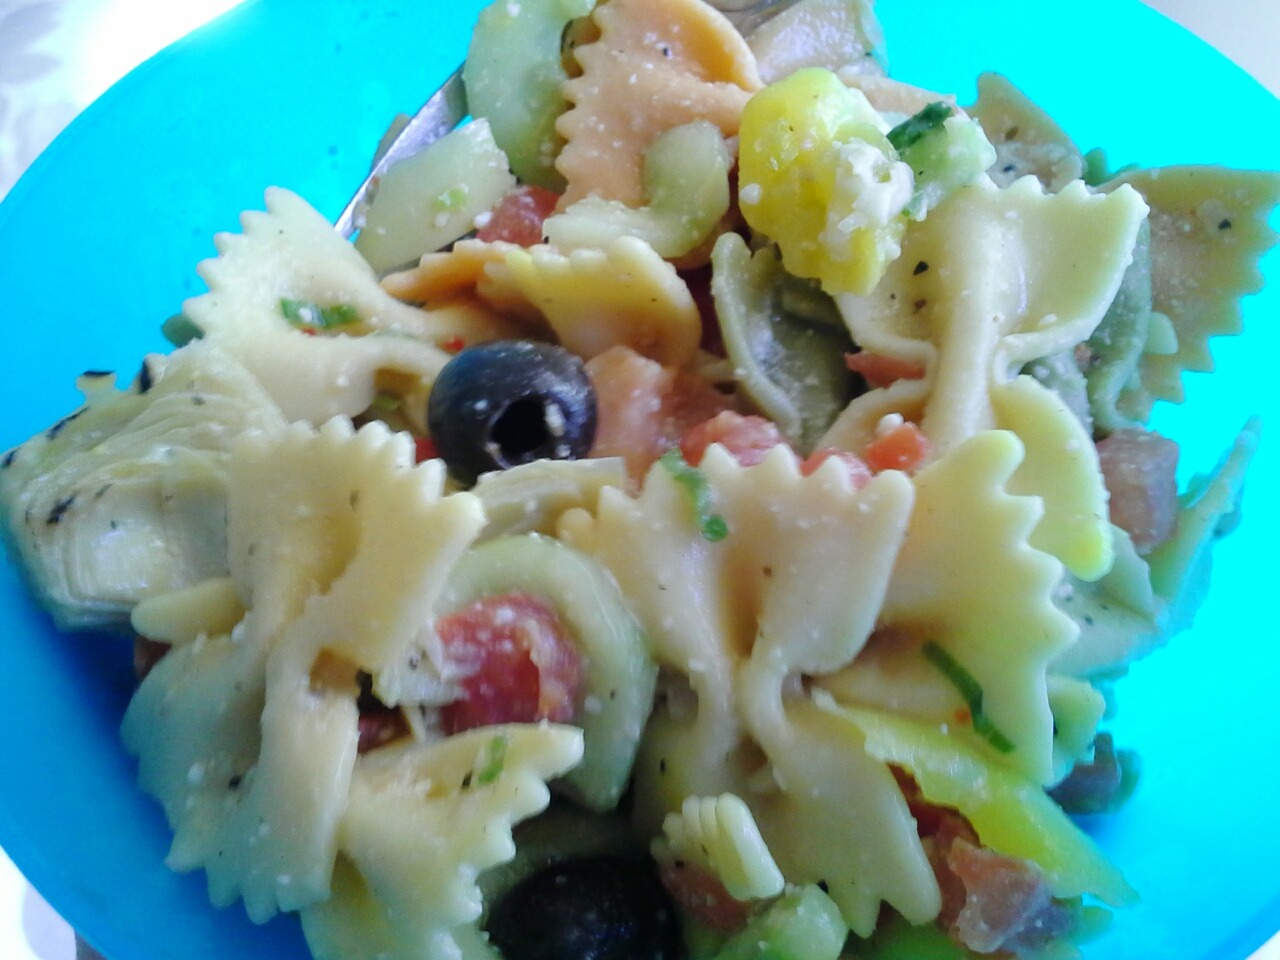 This is possibly the best pasta salad I've ever had, definitely the best I've ever made!! Vegetable rainbow bow ties, 4 medium tomatoes, 1 large cucumber, olives, grilled artichoke hearts from the jar, pepper rings, green onion, good seasons Italian dressing mix, and grated romano  :-D